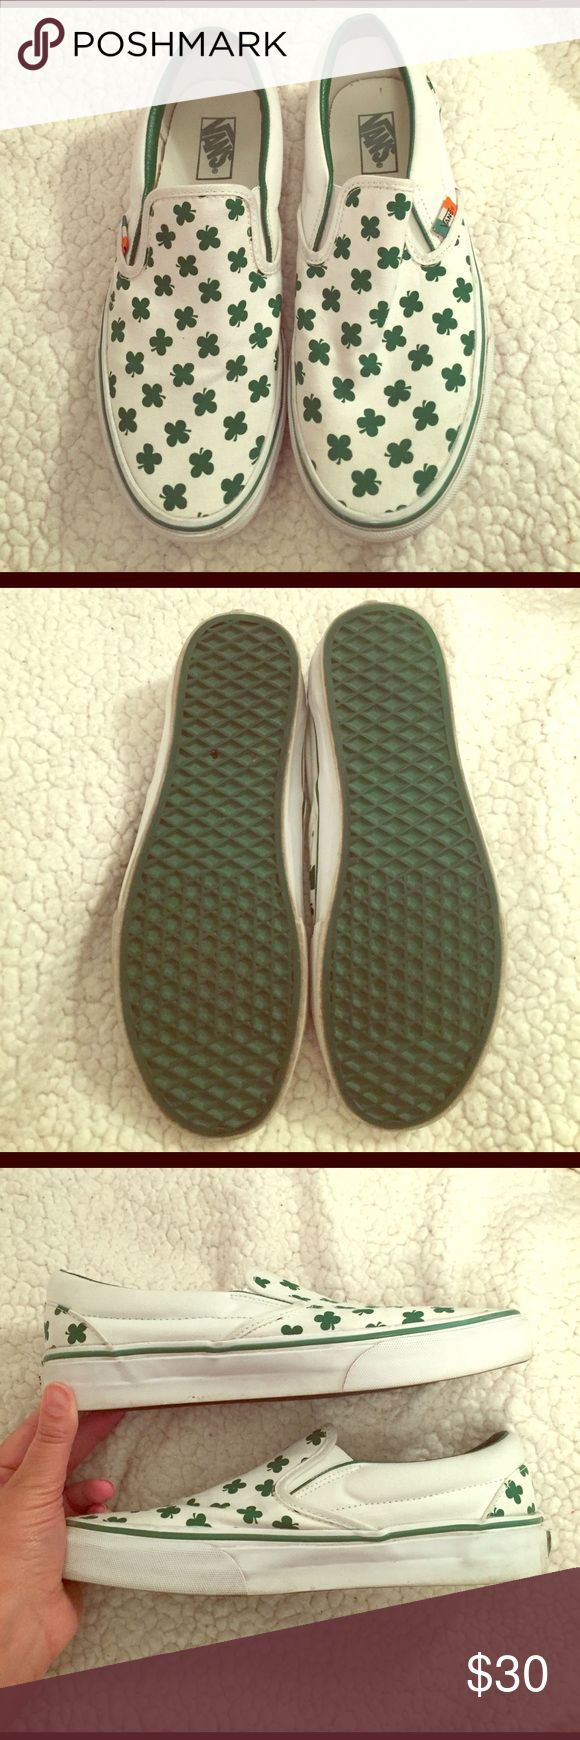 Erin Go Braugh Vans Excellent condition, minor signs of wear. Just a little dirt here and there, should look brand new after a washing. Size says Men's US 8, but I wear a 9.5 women's and they fit me perfectly. Vans are typically unisex shoes, so listing as women's. Note: I've been informed these are pretty rare. 🍀 Vans Shoes Sneakers